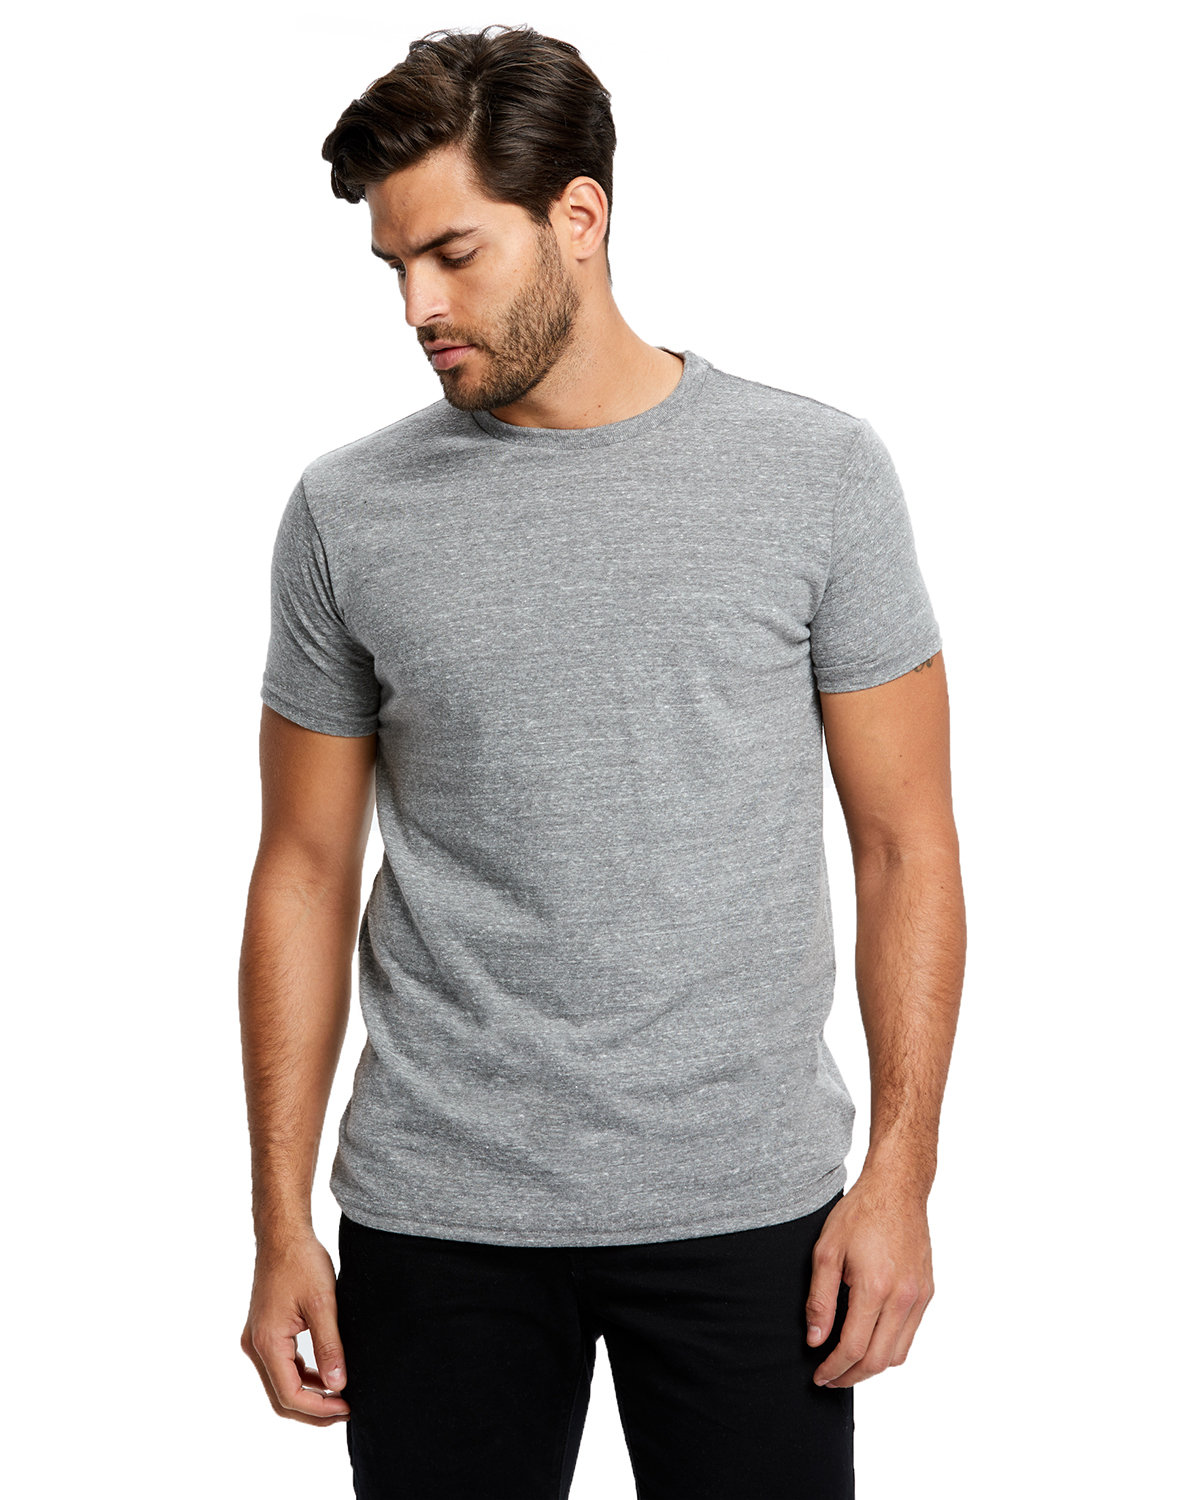 US Blanks Men's Short-Sleeve Made in USA Triblend T-Shirt TRI GREY